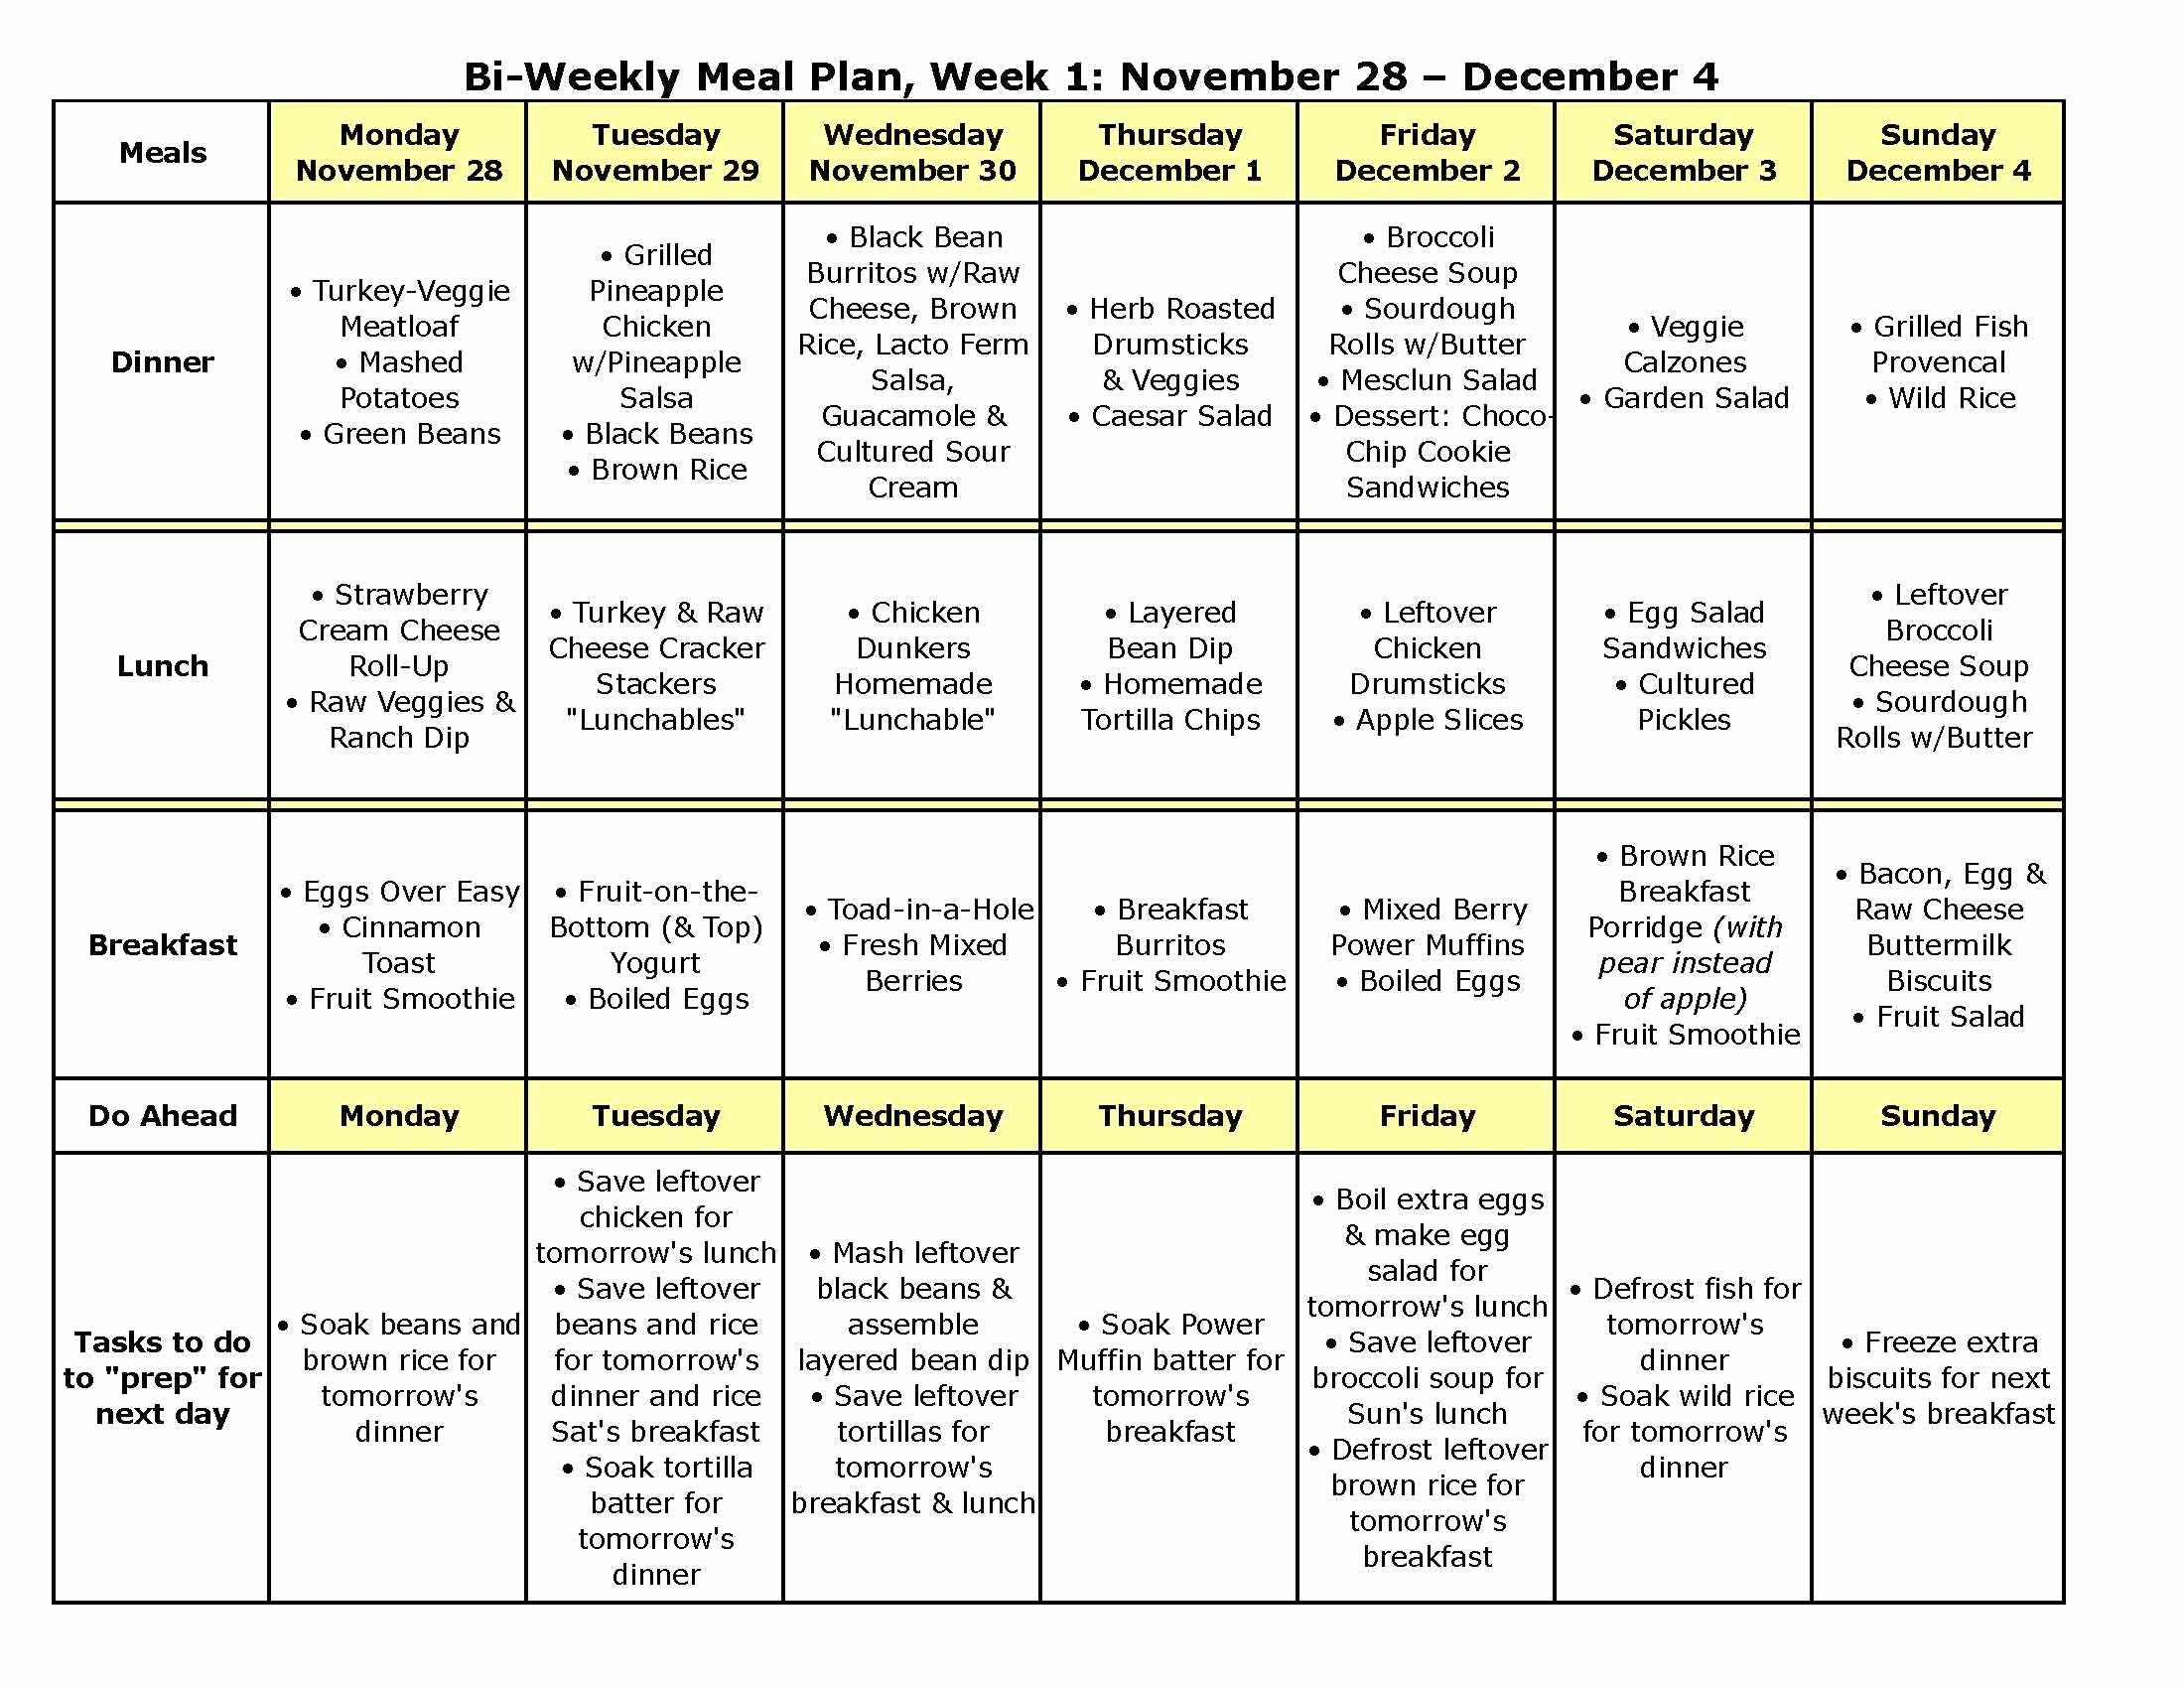 Weekly Meal and Snack Planner Unique Bi Weekly Meal Plan 9a Has Recipes too